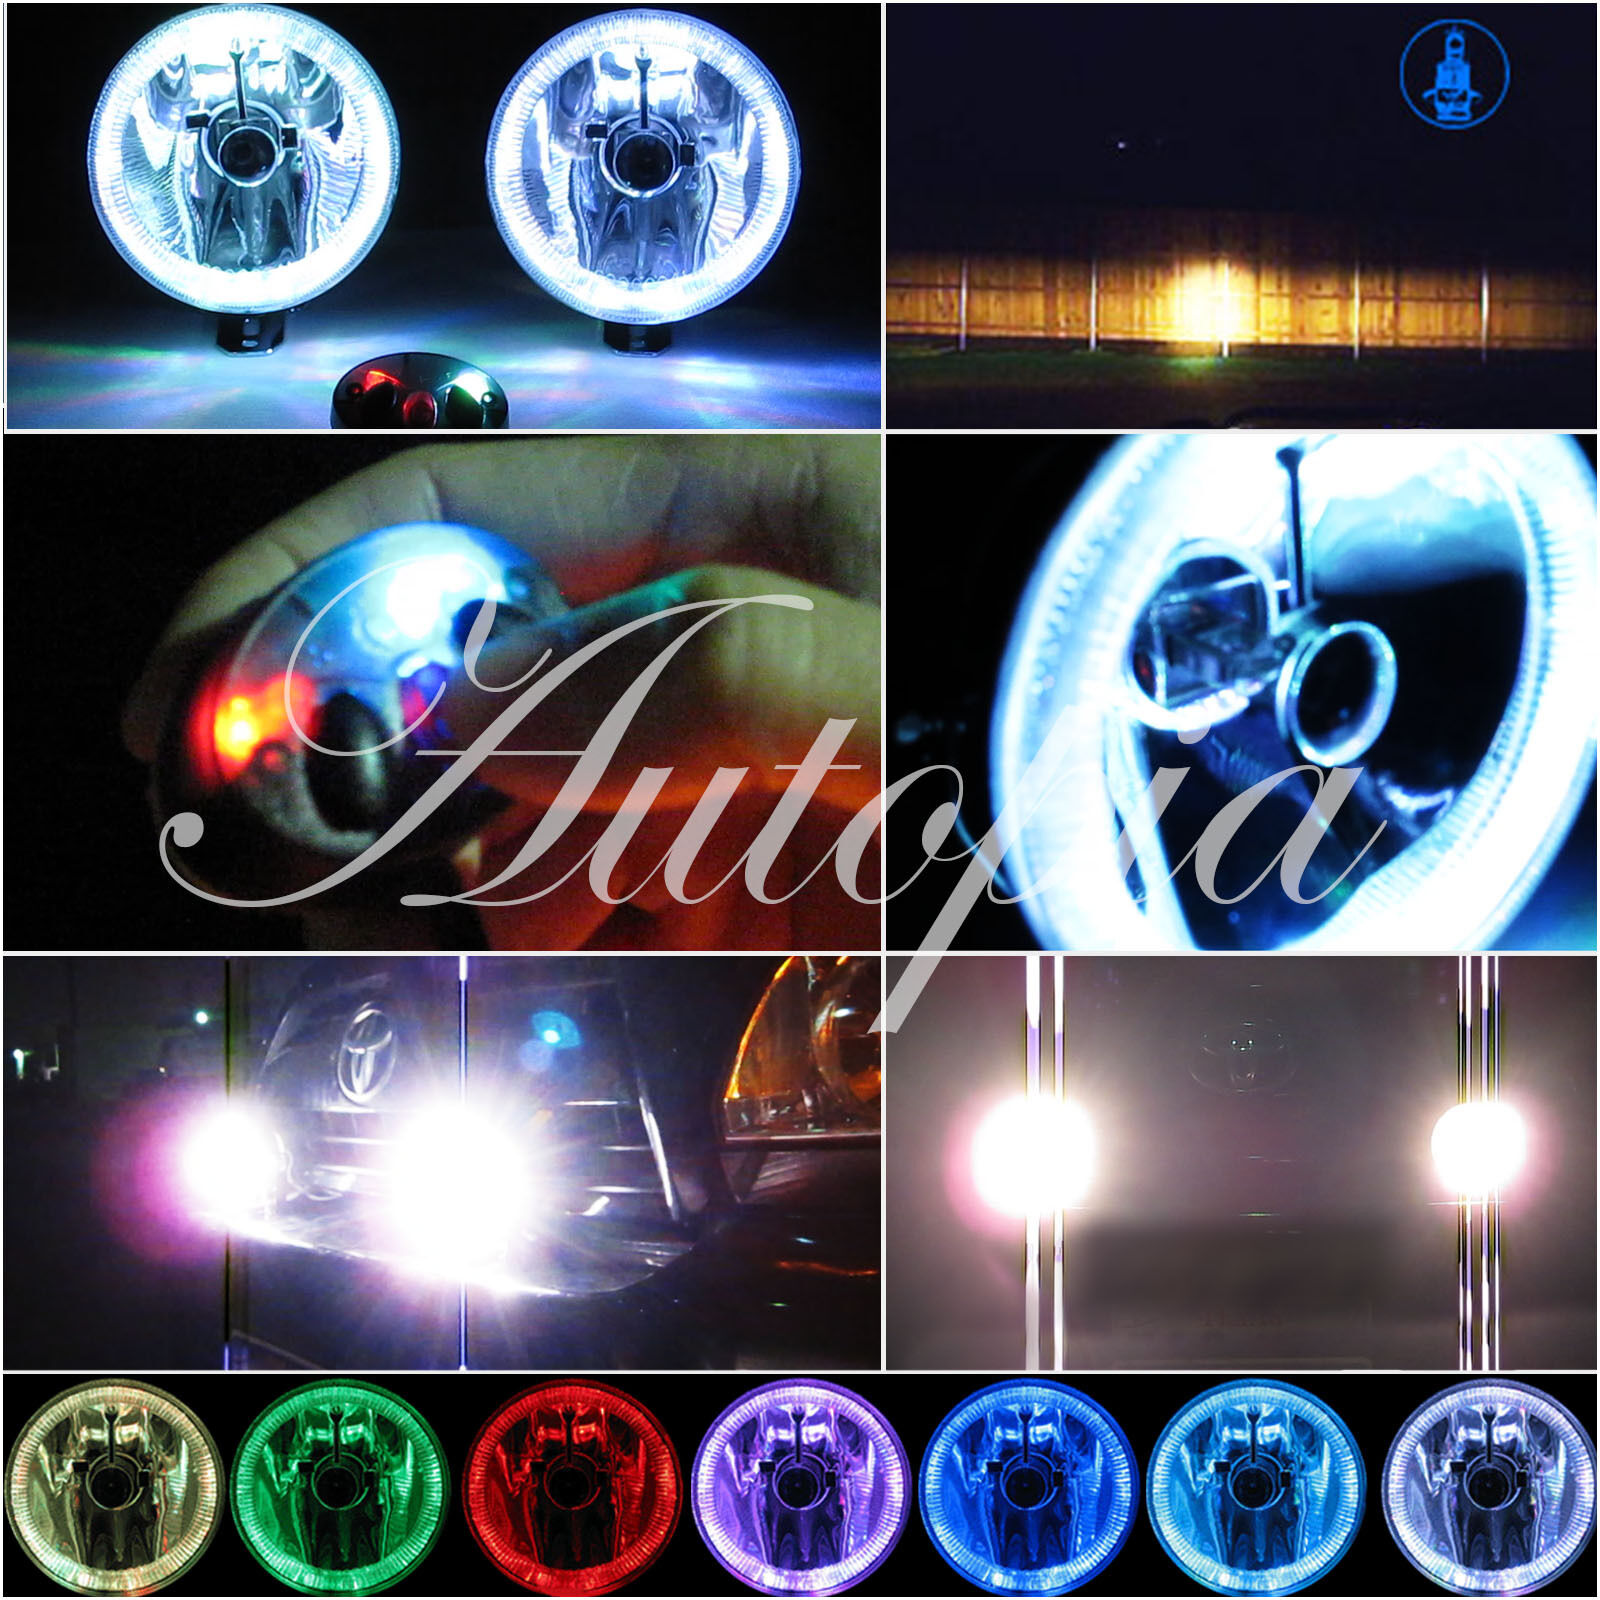 6 4x4 Super Build Off Road Fog Lights Lamps Wiring Kit Switch Halo Covers 1 Of 1free Shipping See More